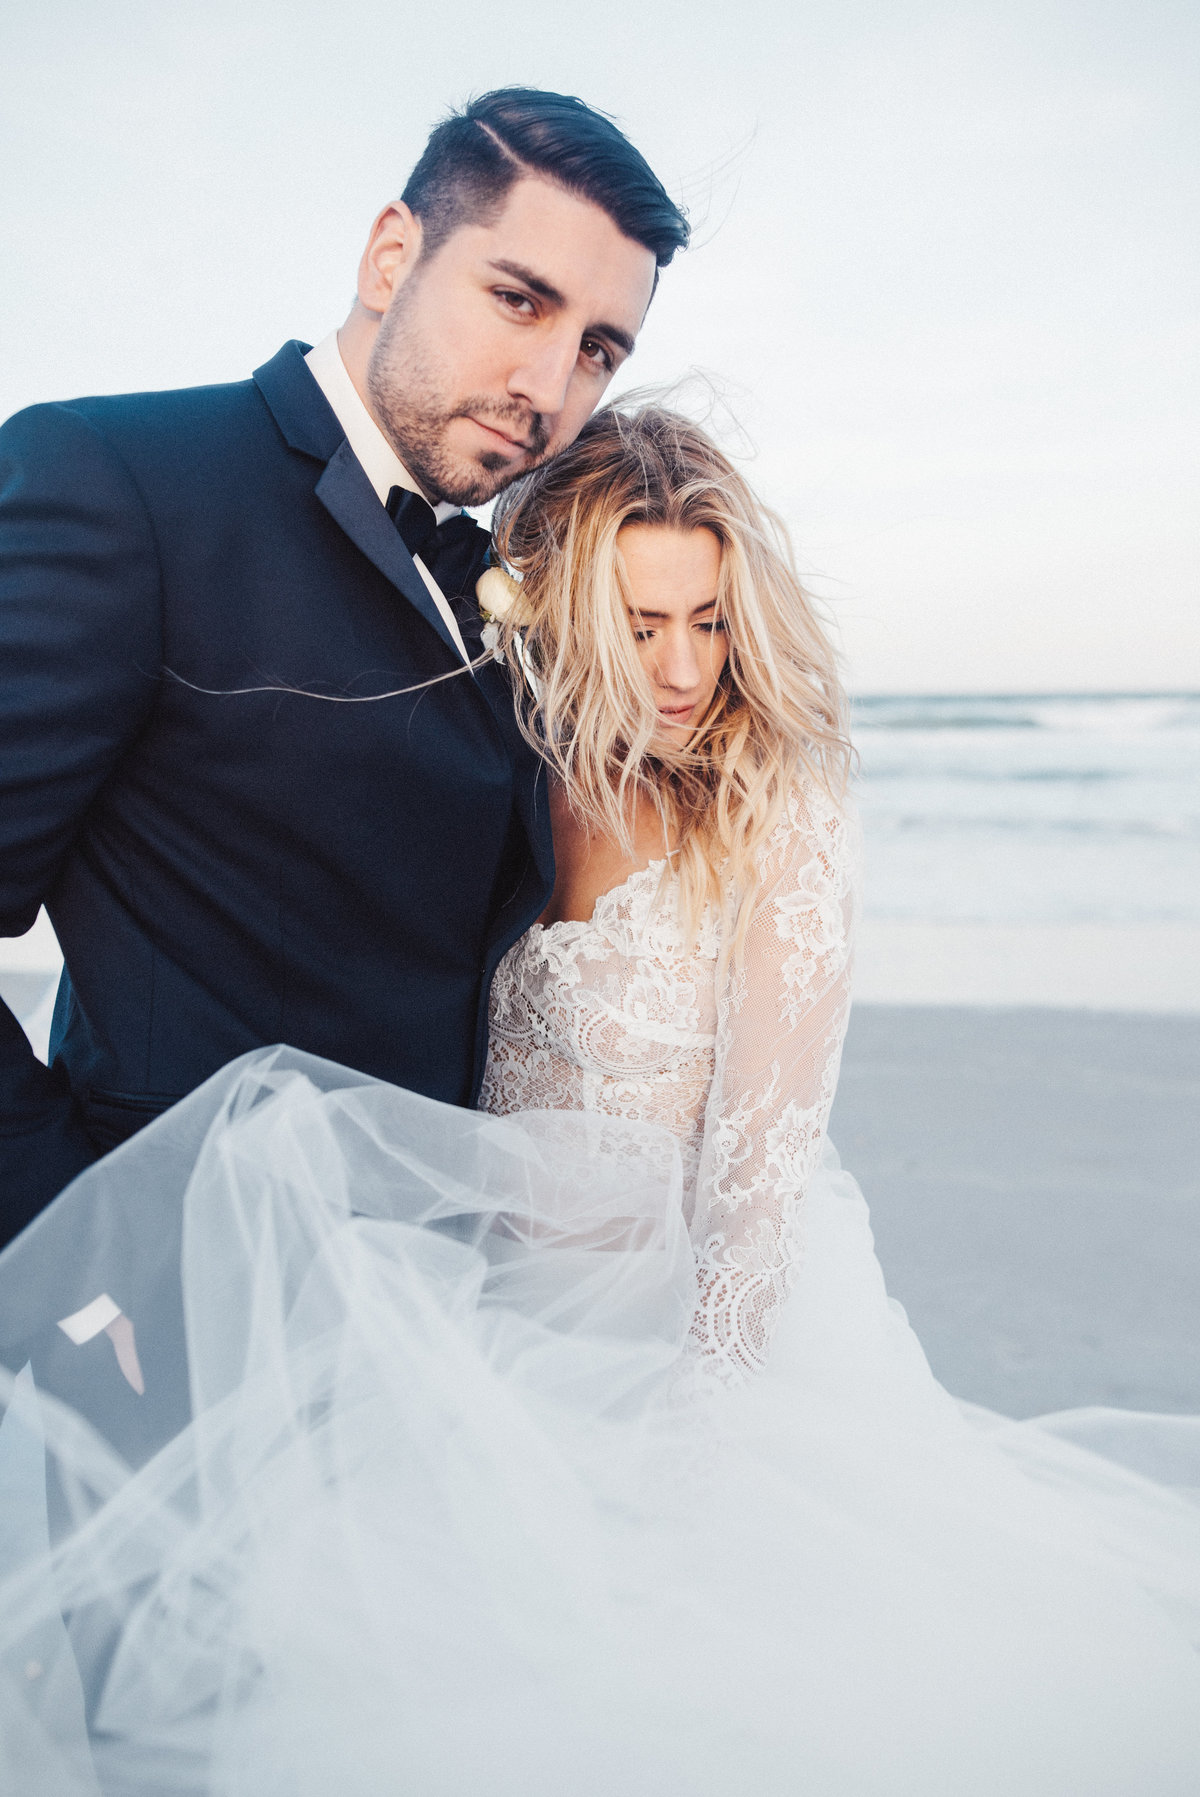 wilmington_beach_elopement_2016-4